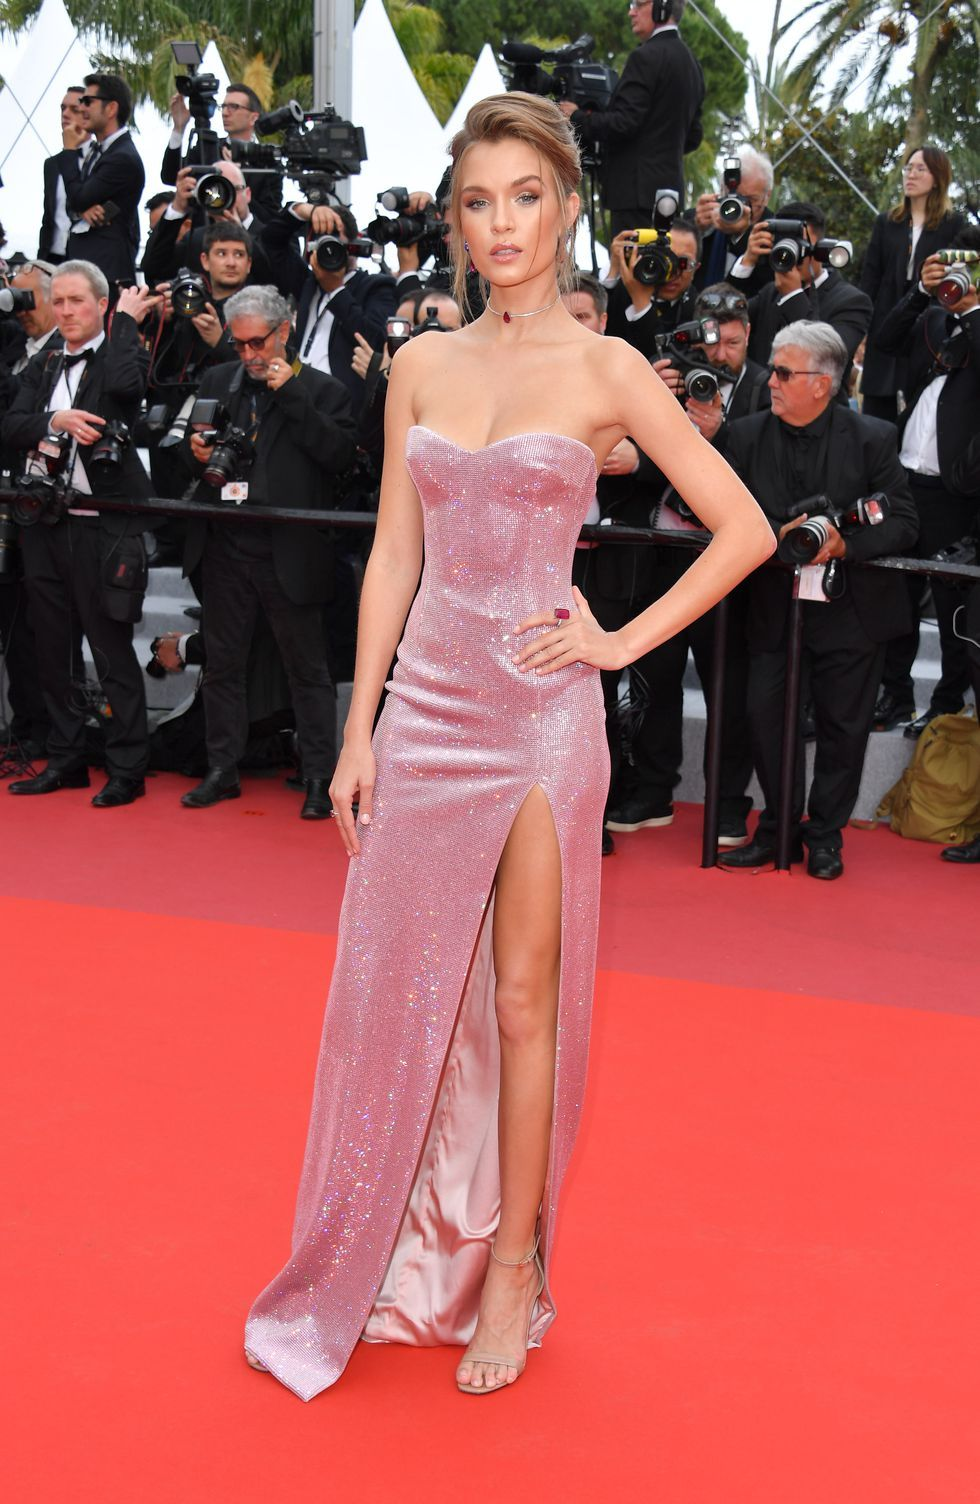 The 2016 Cannes Red Carpets Best-Dressed Celebrities